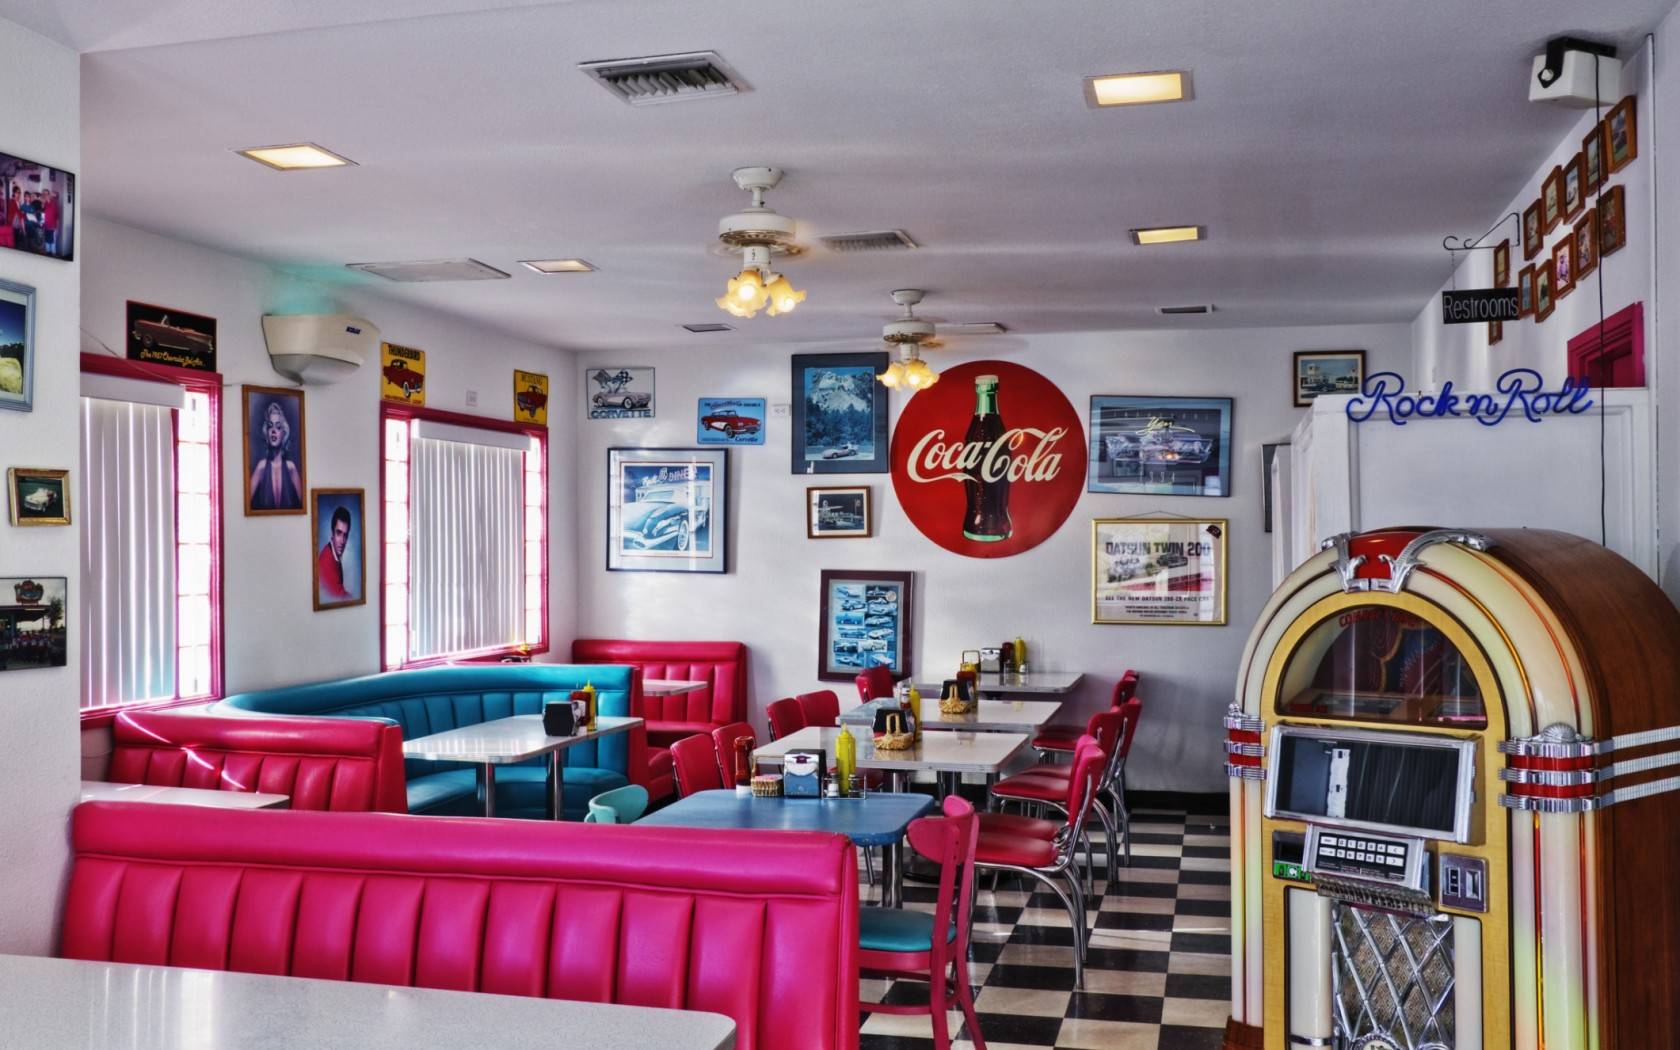 Free download Diner Style Wallpaper of a 50s style Diner ...